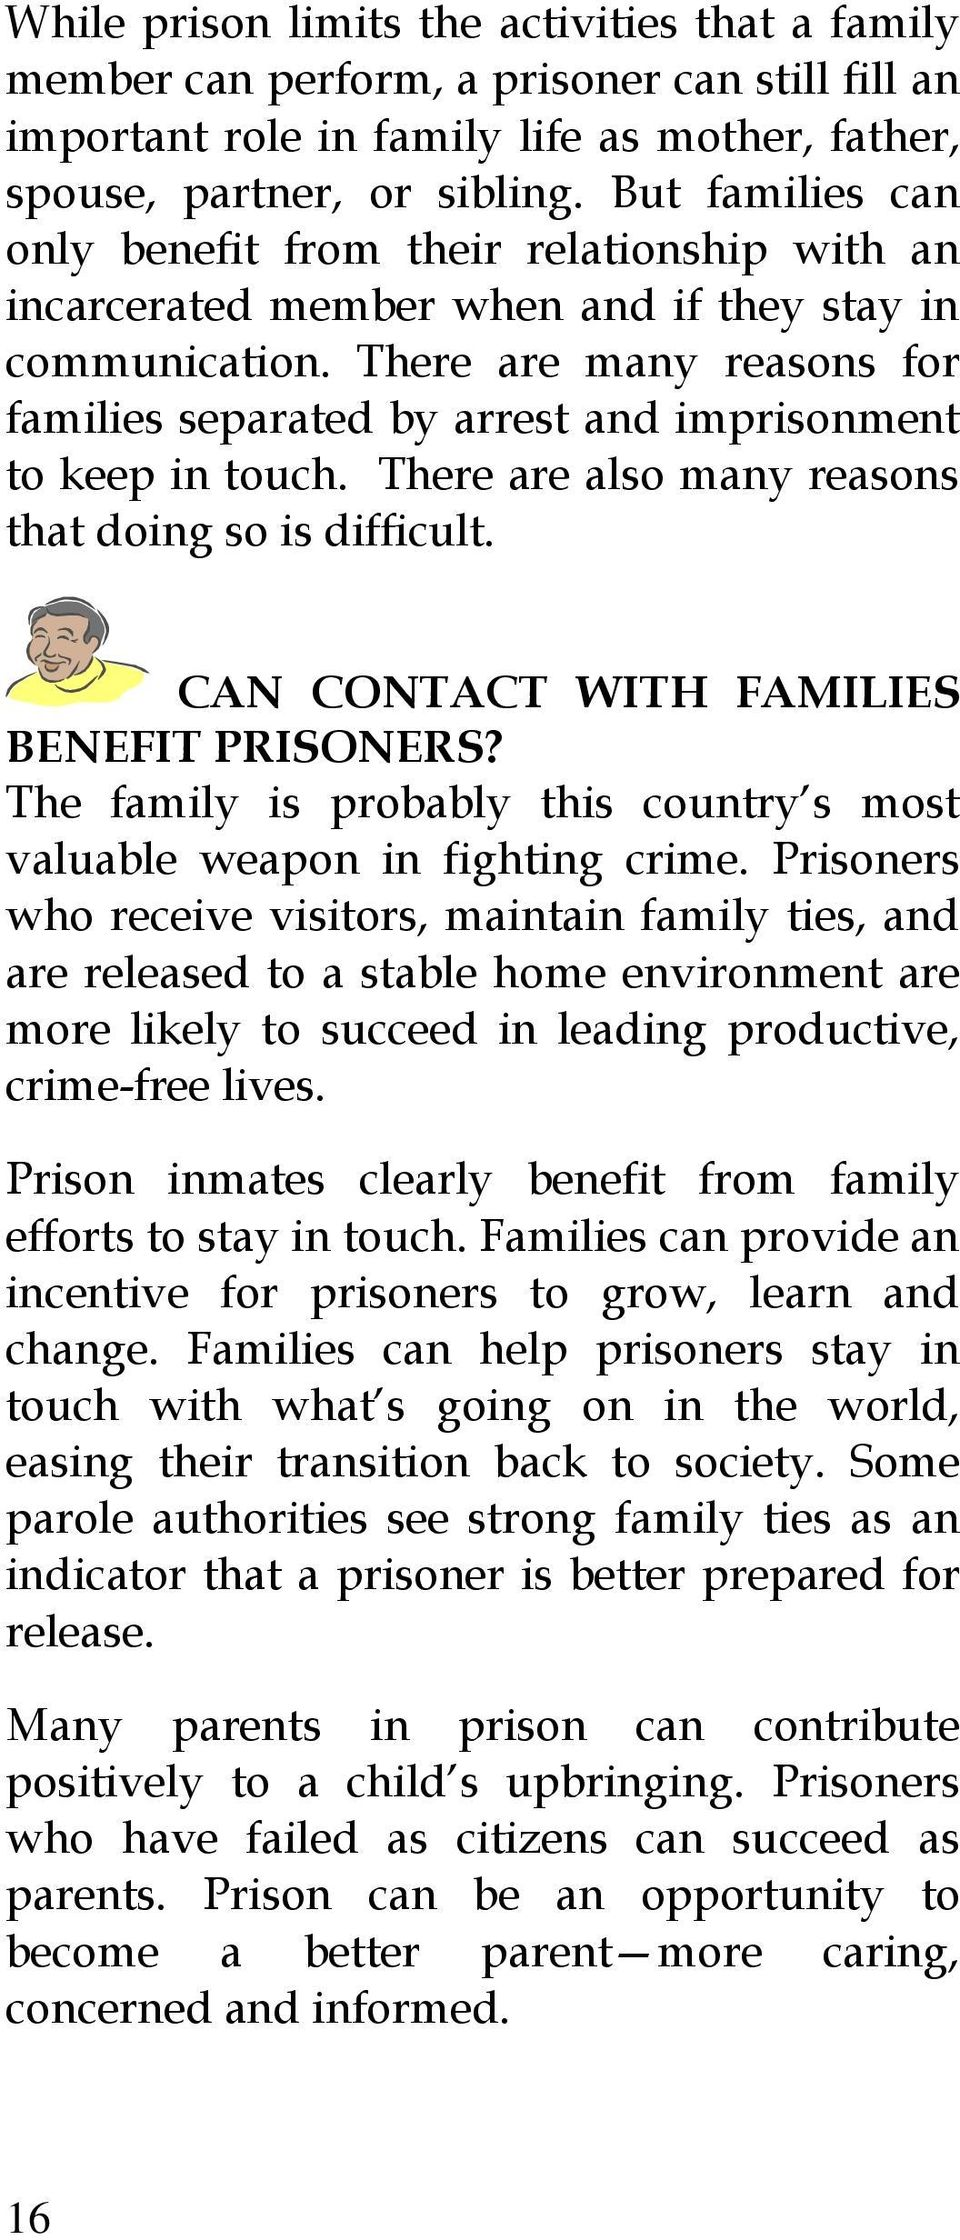 There are many reasons for families separated by arrest and imprisonment to keep in touch. There are also many reasons that doing so is difficult. CAN CONTACT WITH FAMILIES BENEFIT PRISONERS?